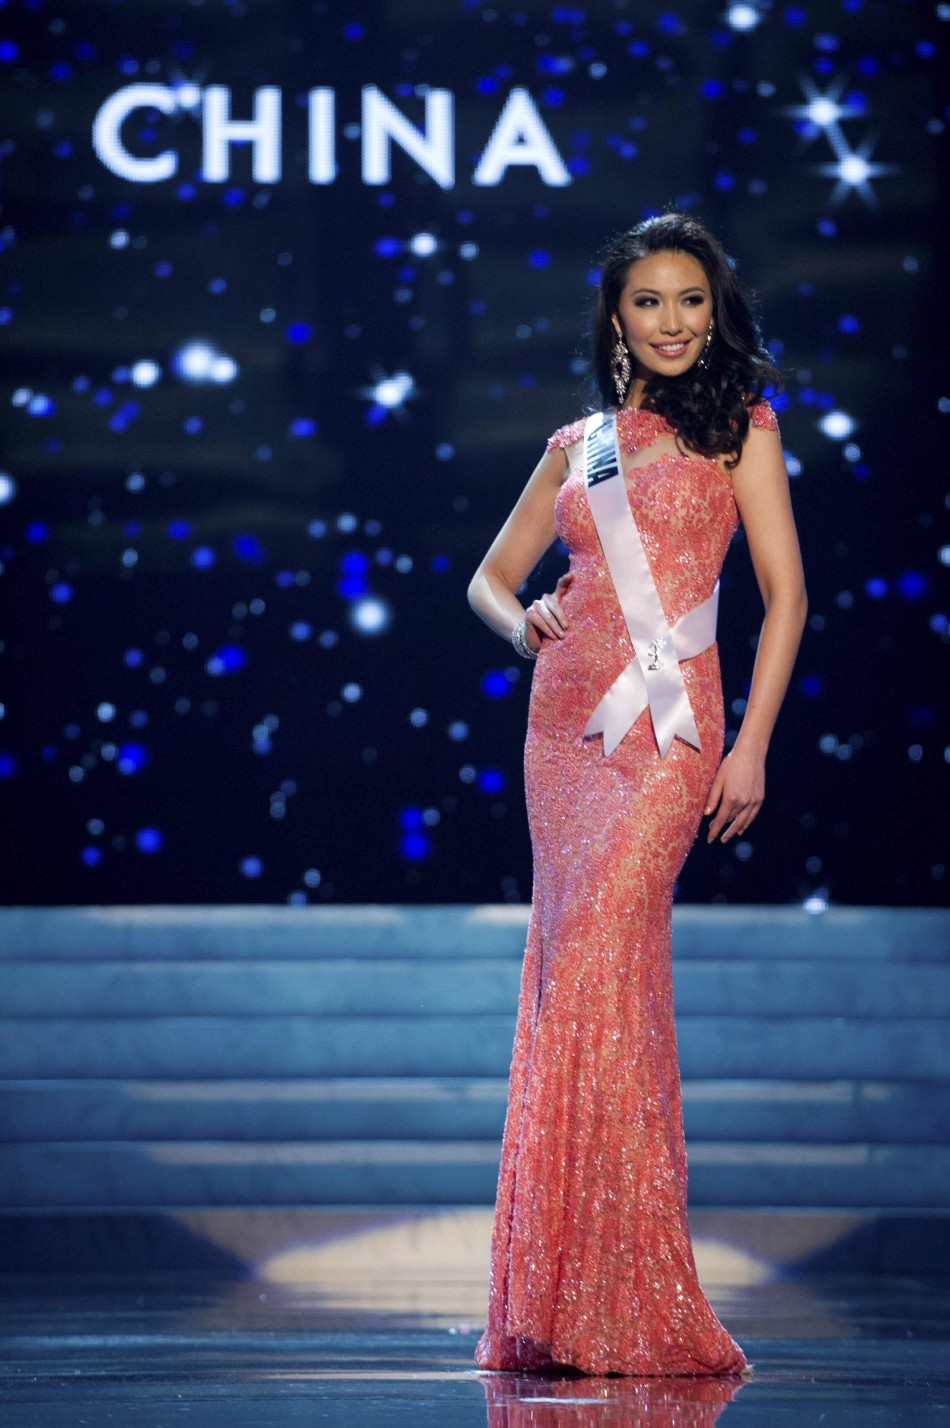 Miss China 2012 Ji Dan Xu competes during 2012 Miss Universe Presentation Show in Las Vegas